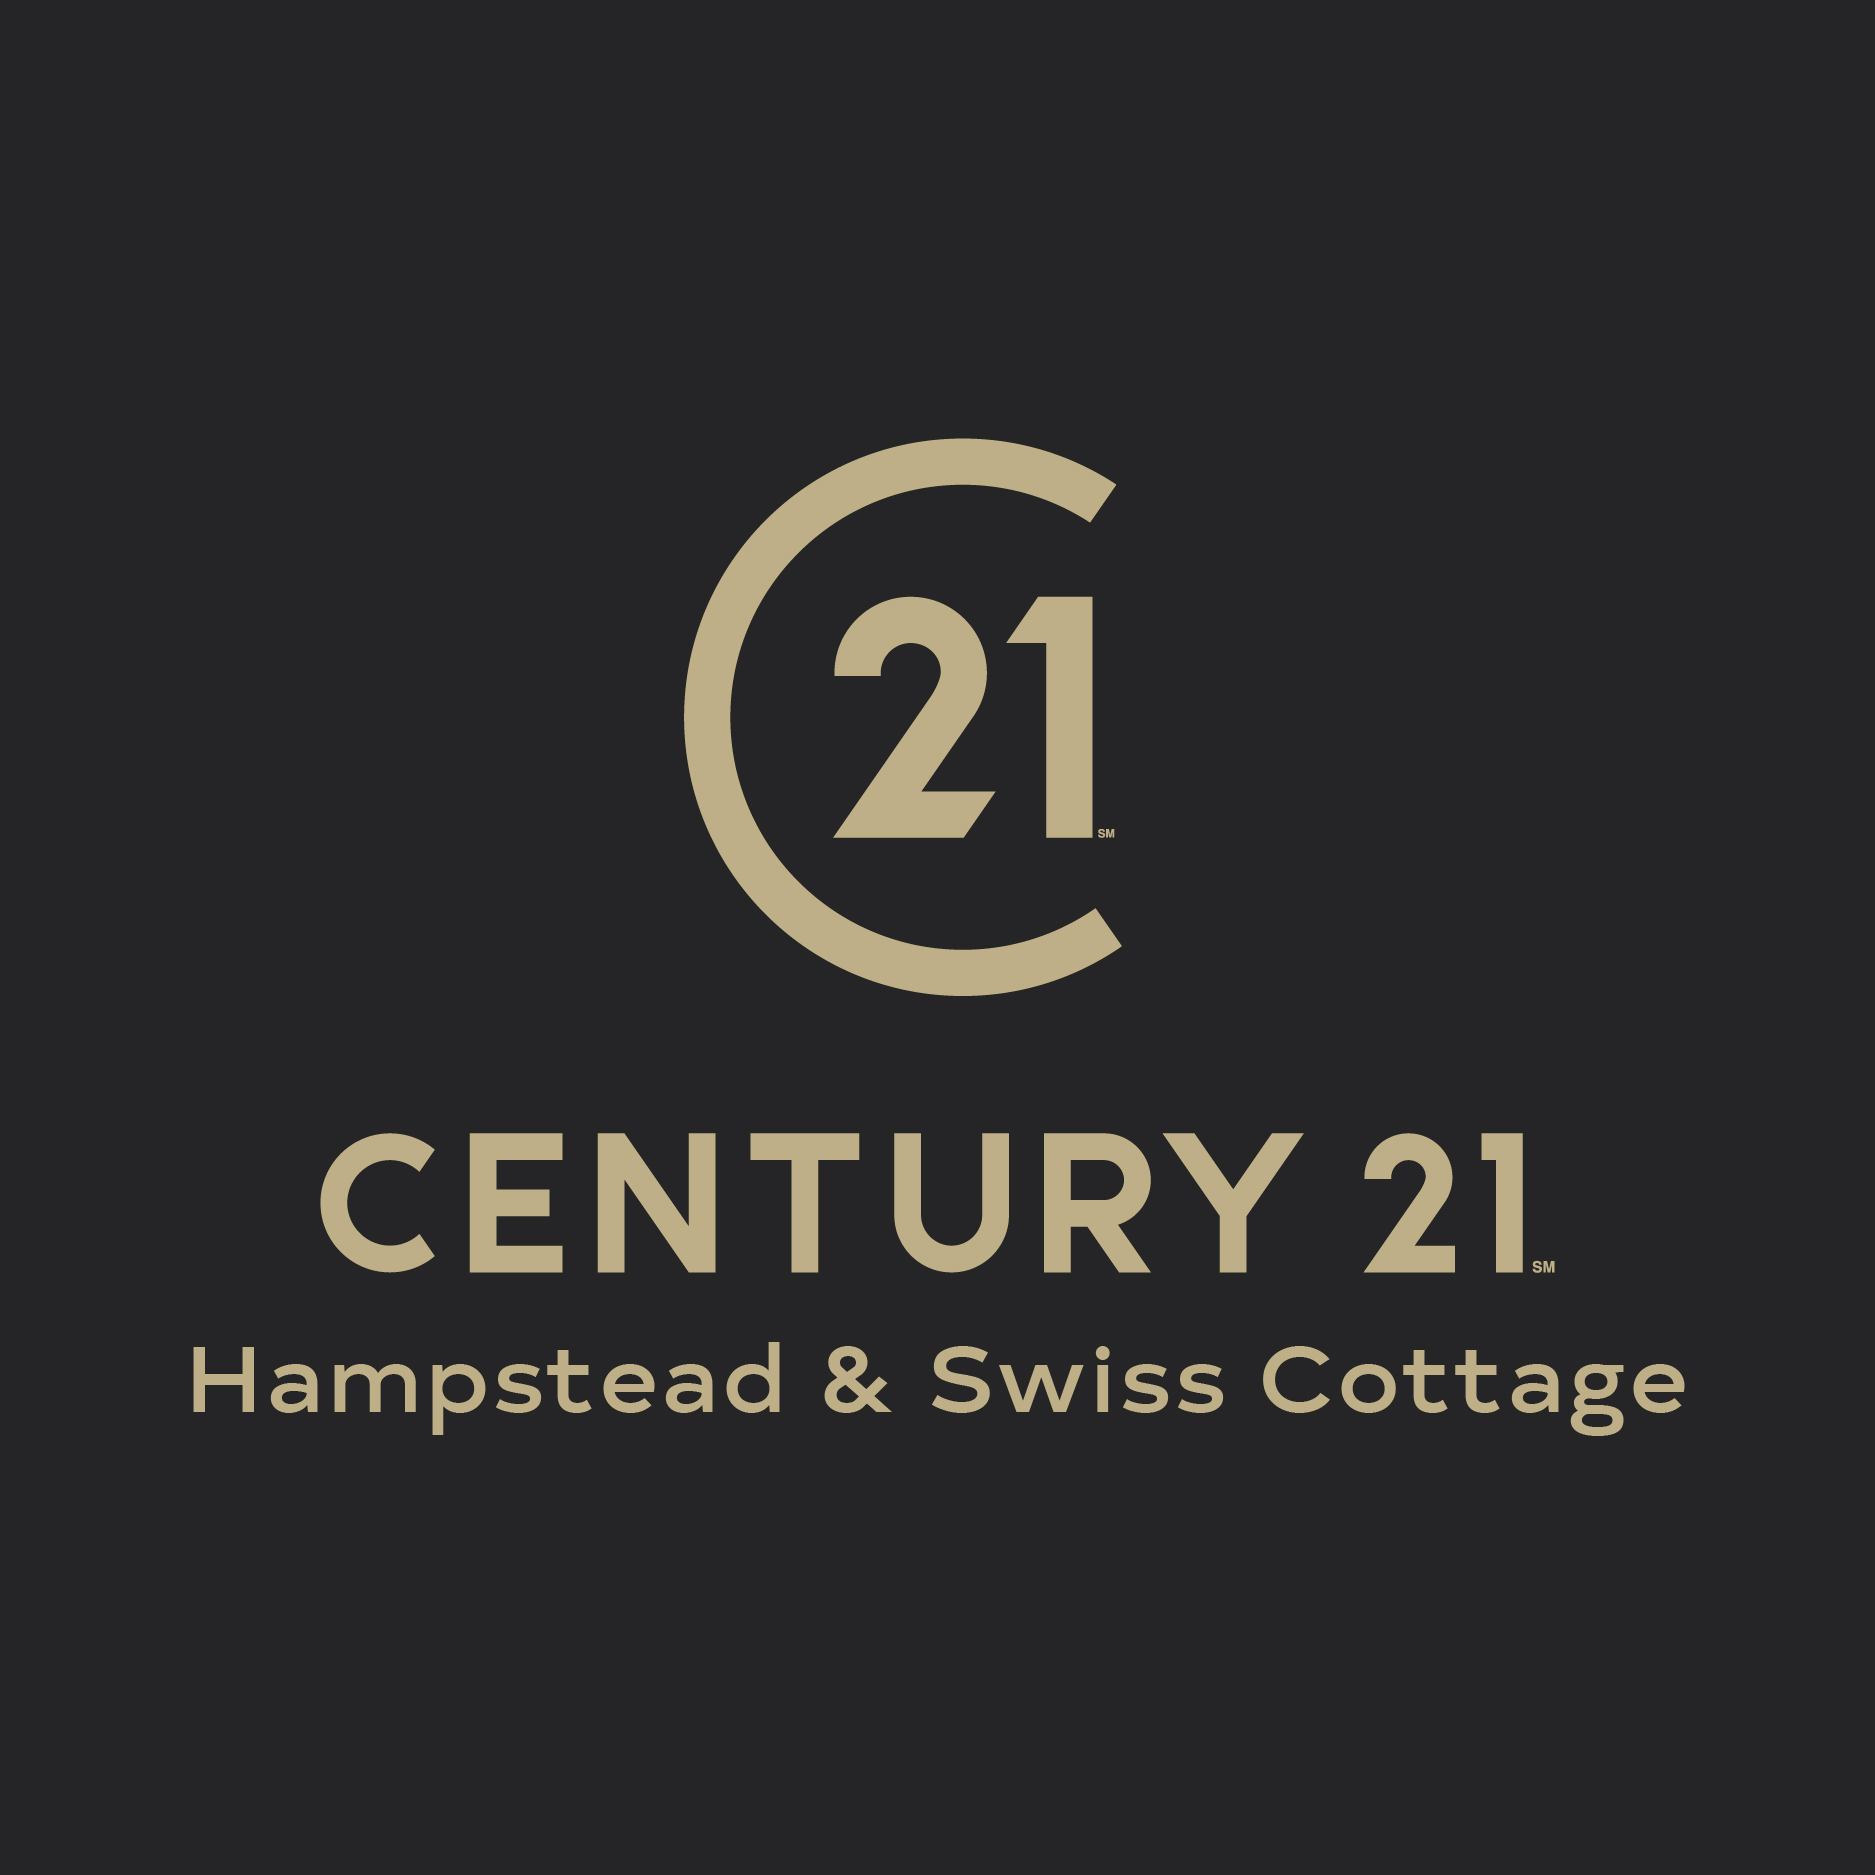 Century 21 - Hampstead & Swiss Cottage logo